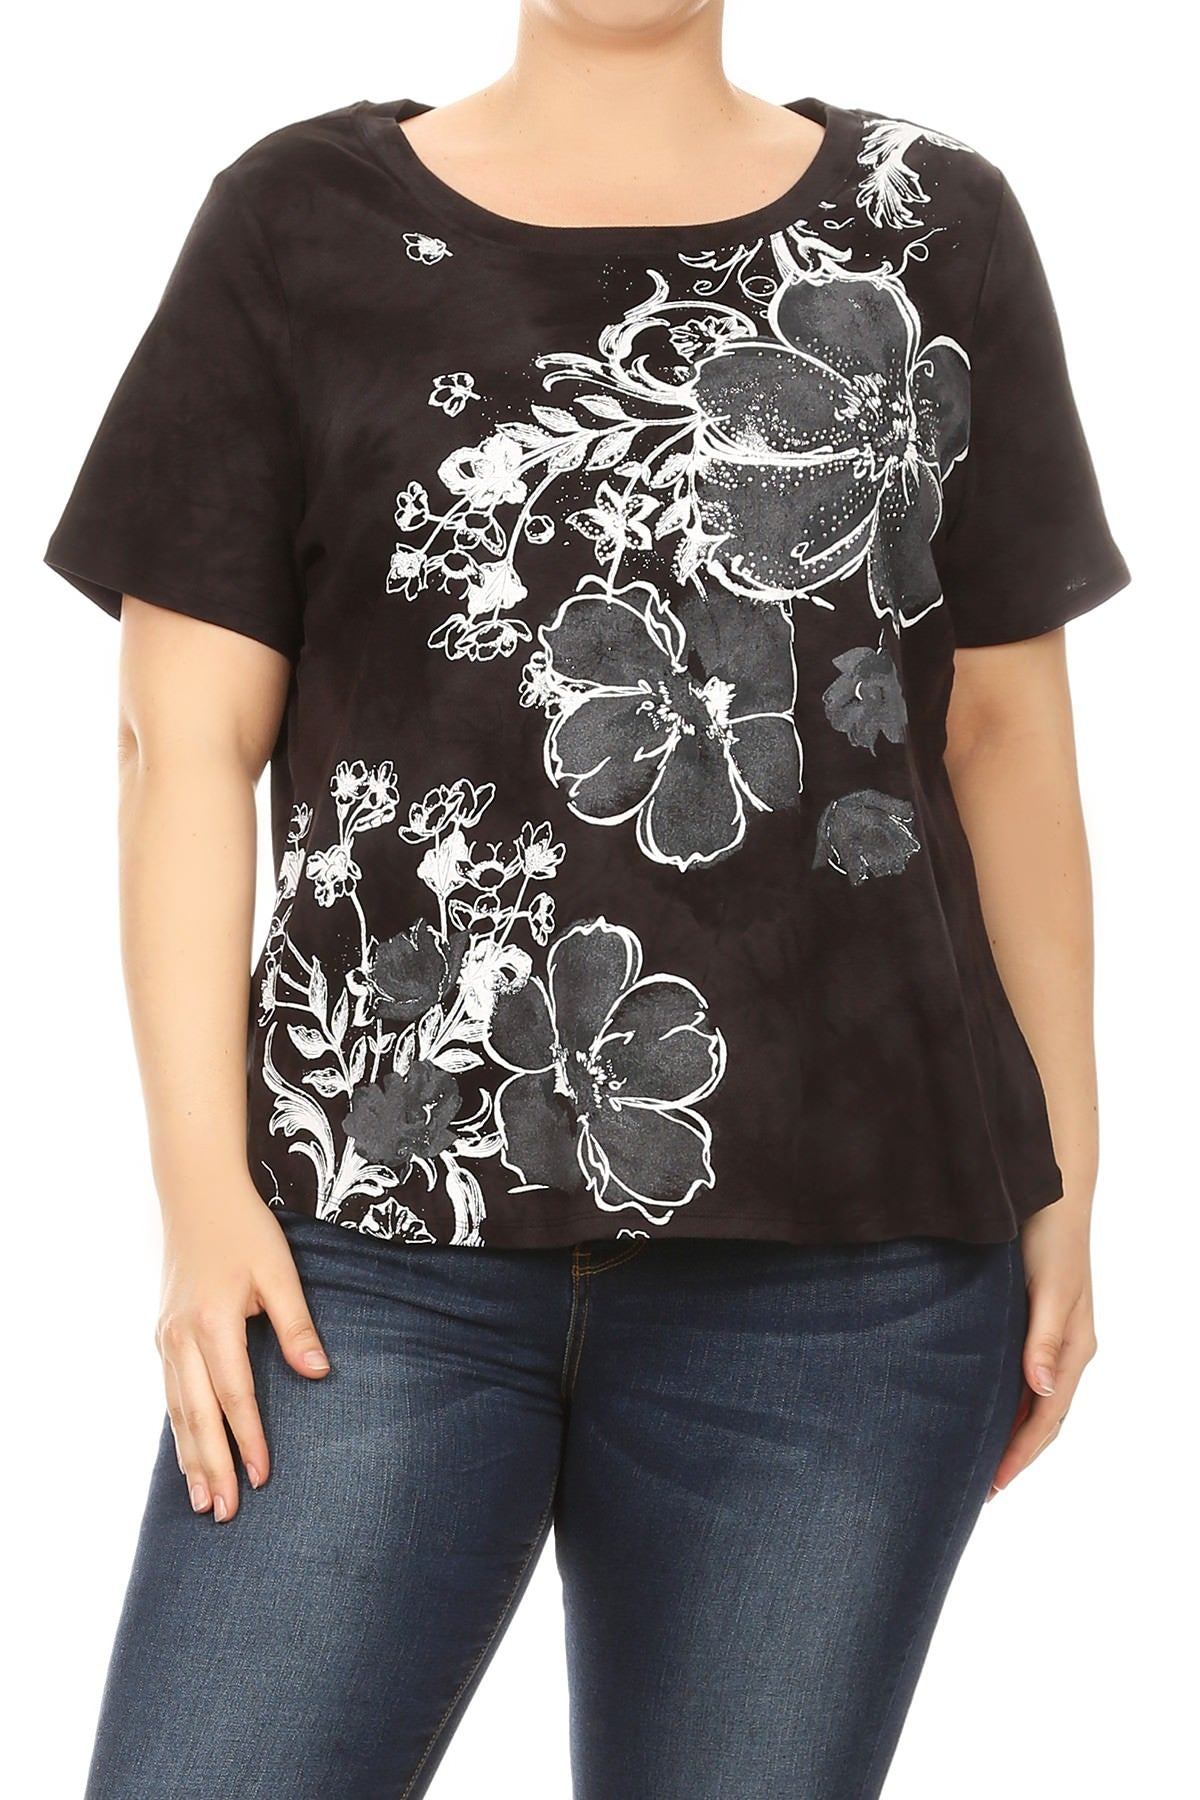 9fde101a5efd48 Women Plus Size Tye-Dye Floral Design Short Sleeve Top Tee Blouse Black  SE16048 ...